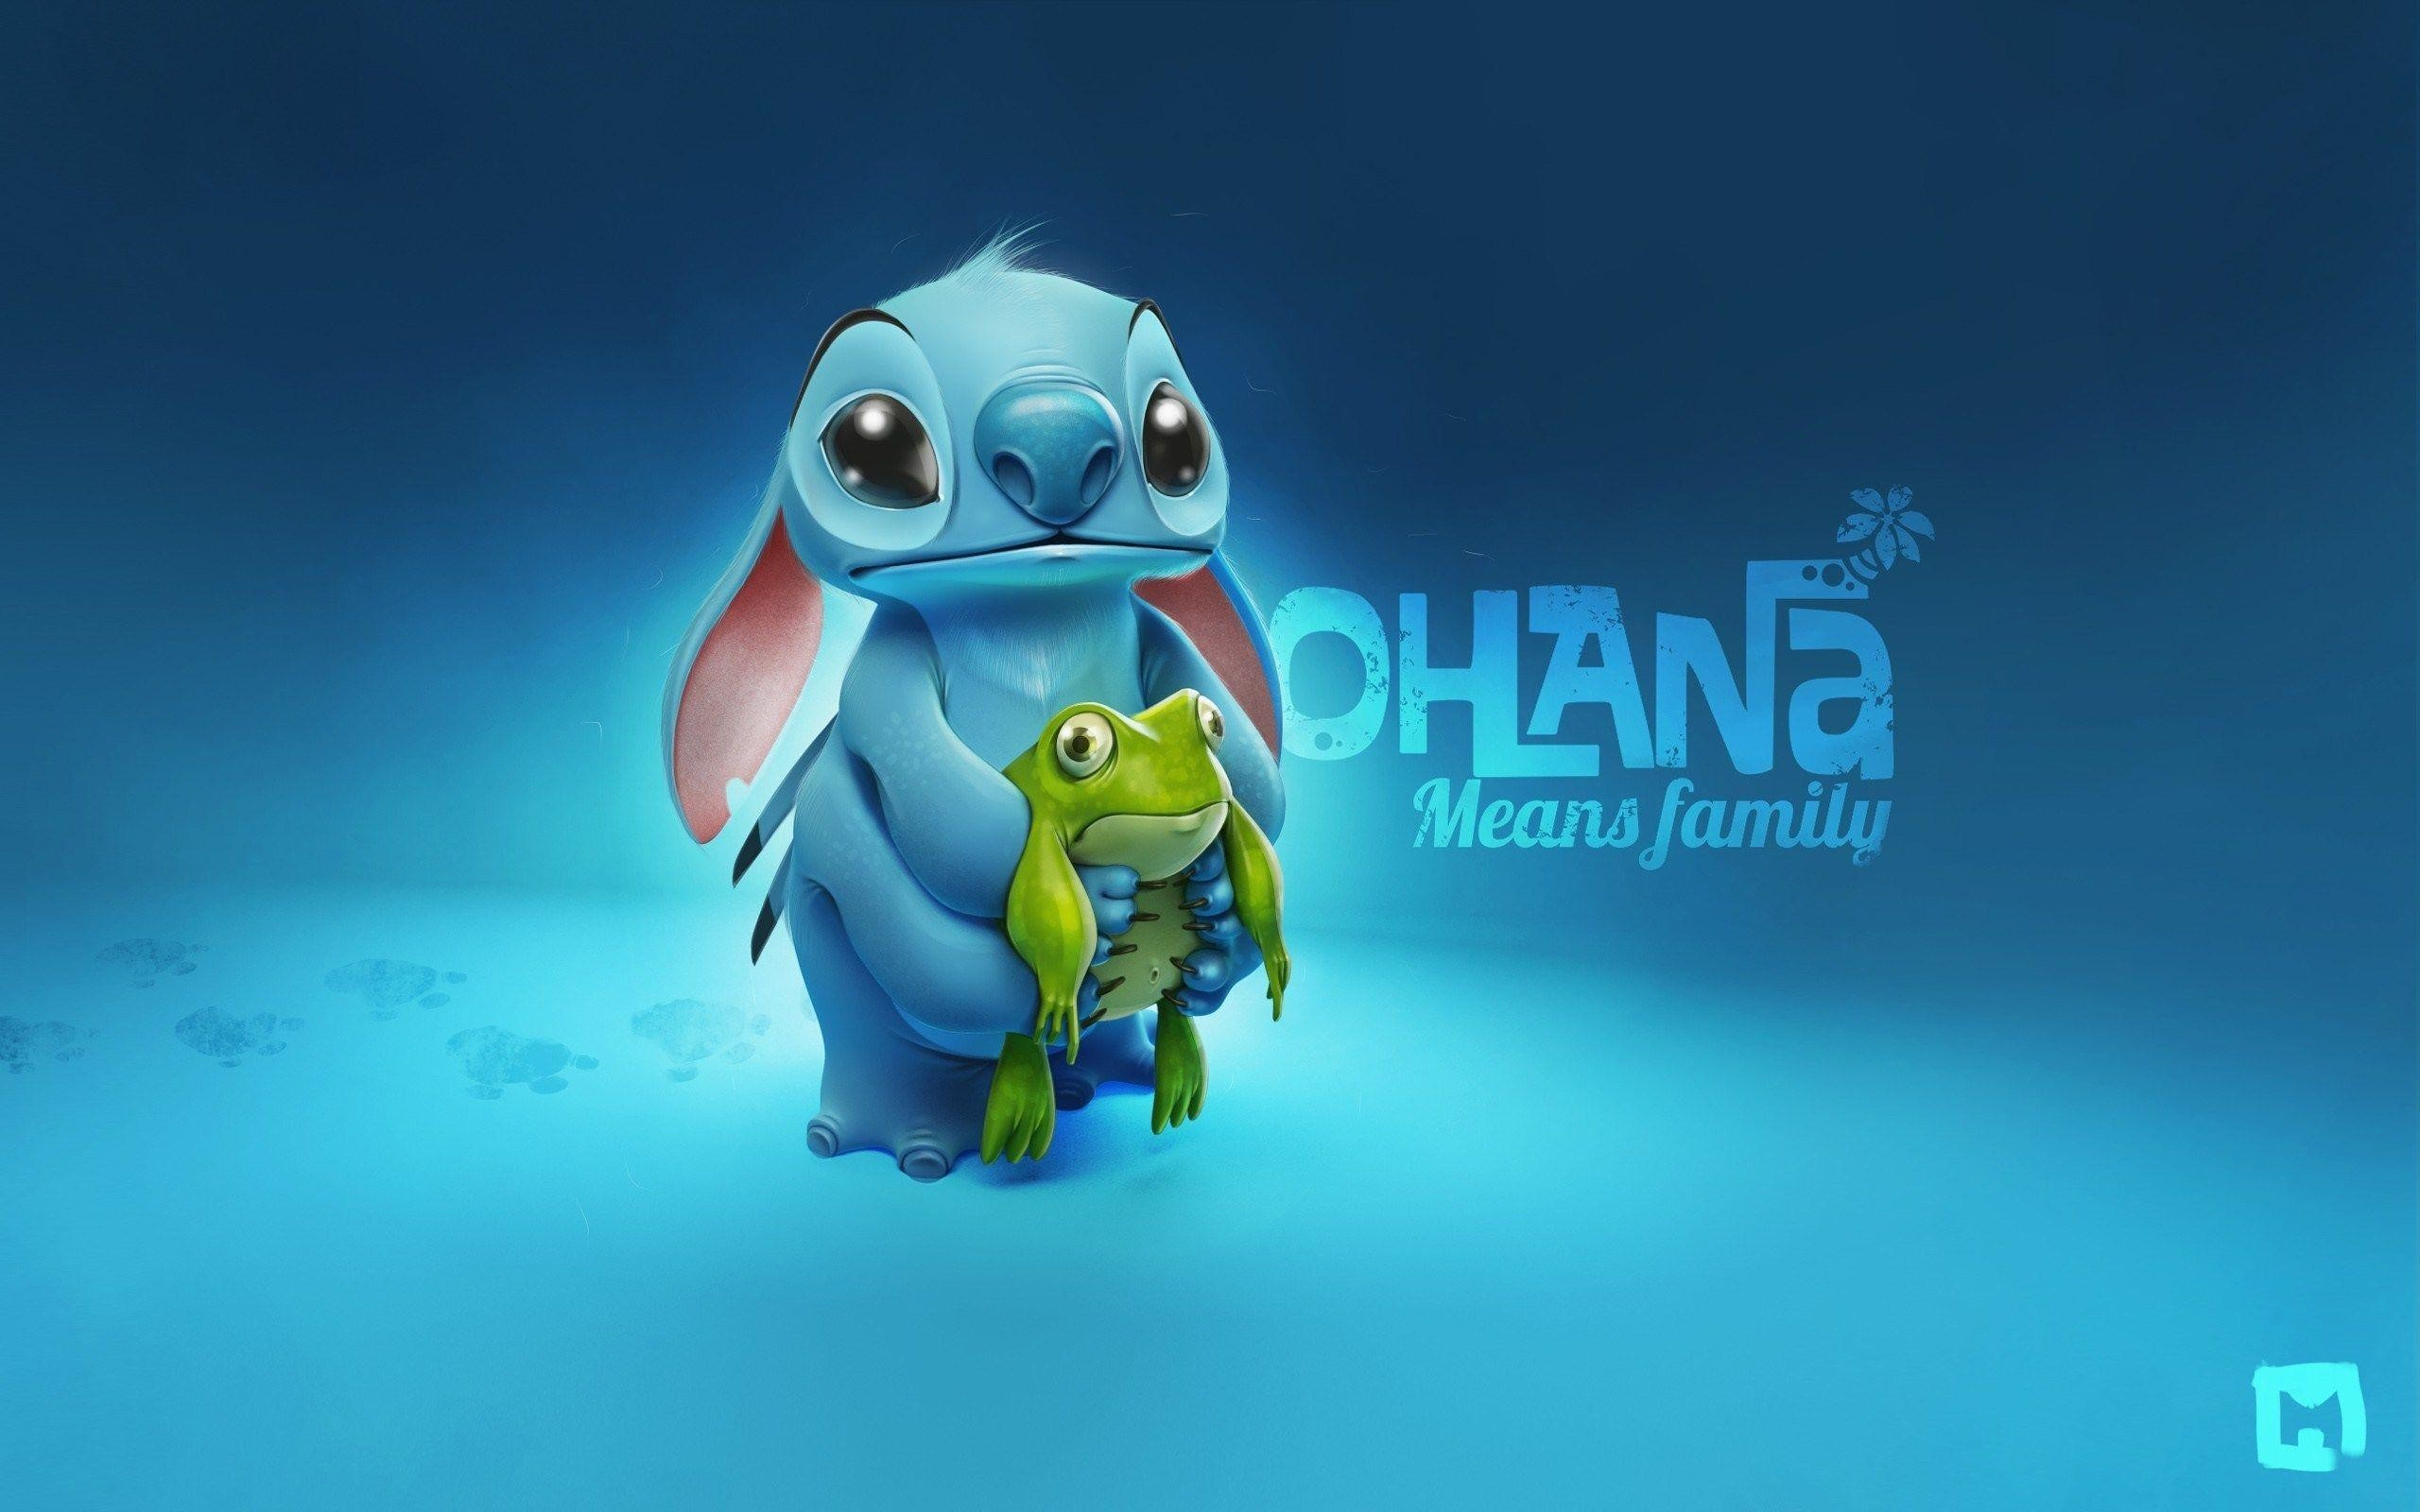 2560x1600 Blue Background Stitch and Frog Cartoon HD Wallpaper - ZoomWalls